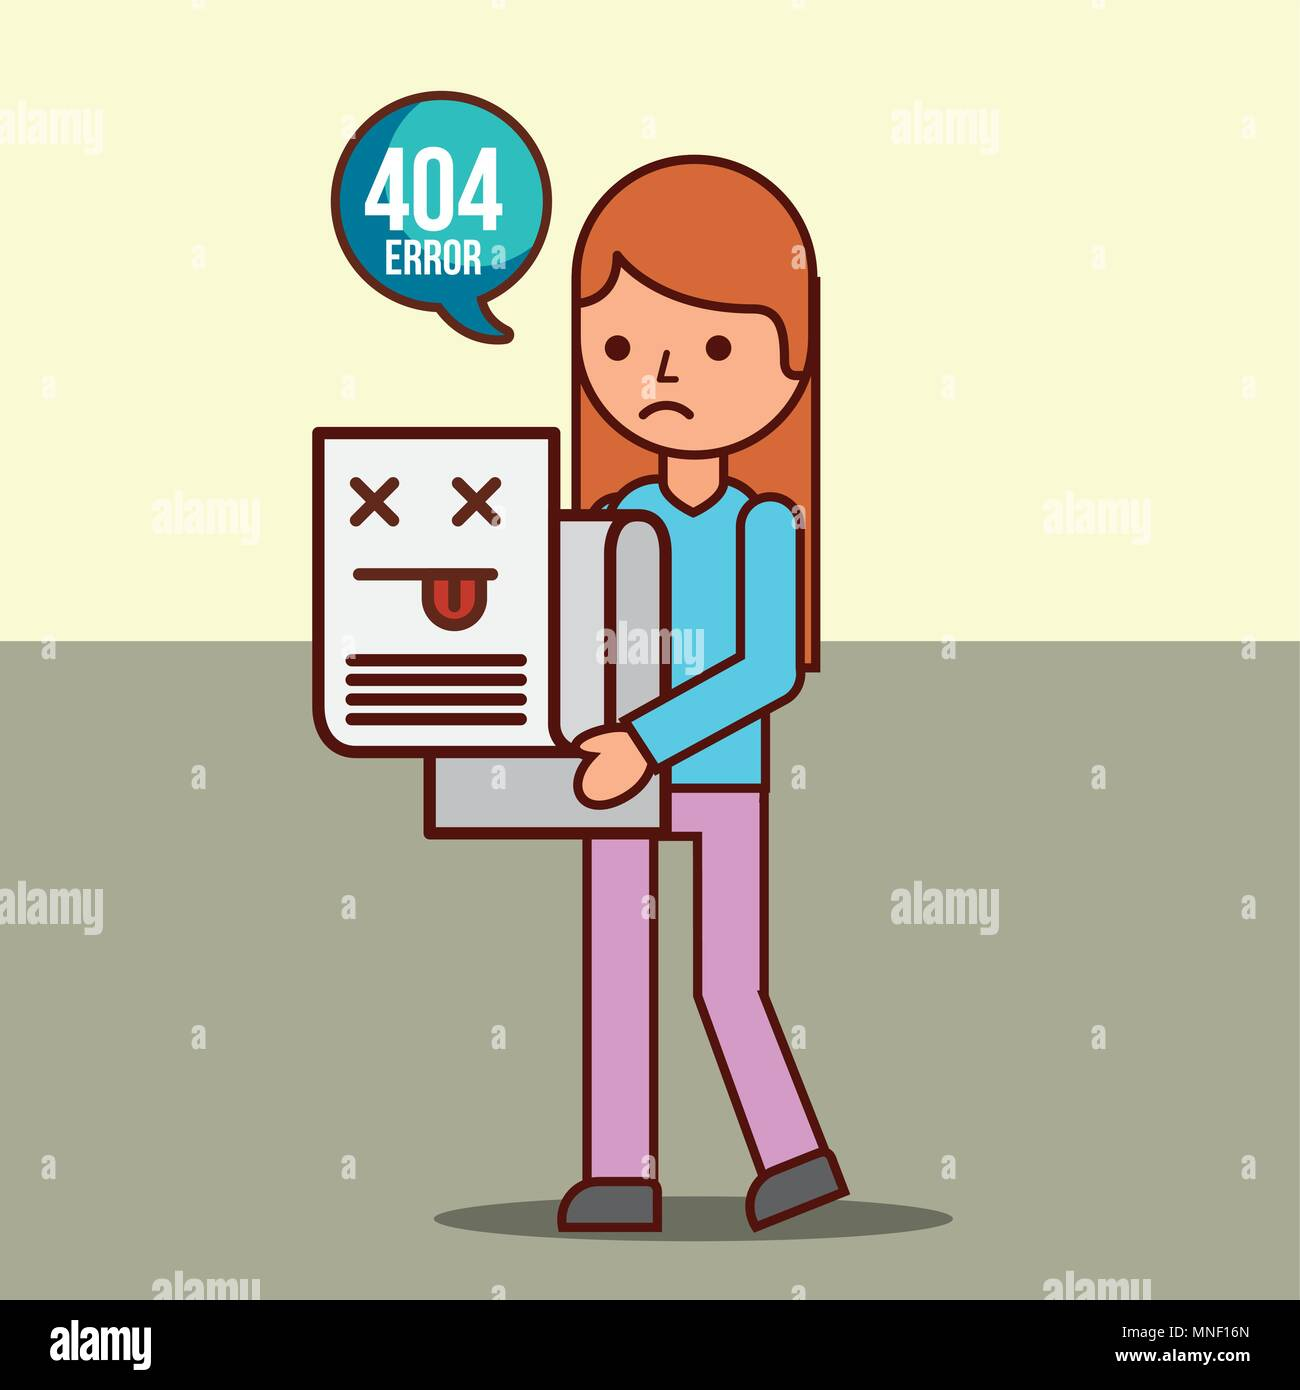 404 error page not found - Stock Vector